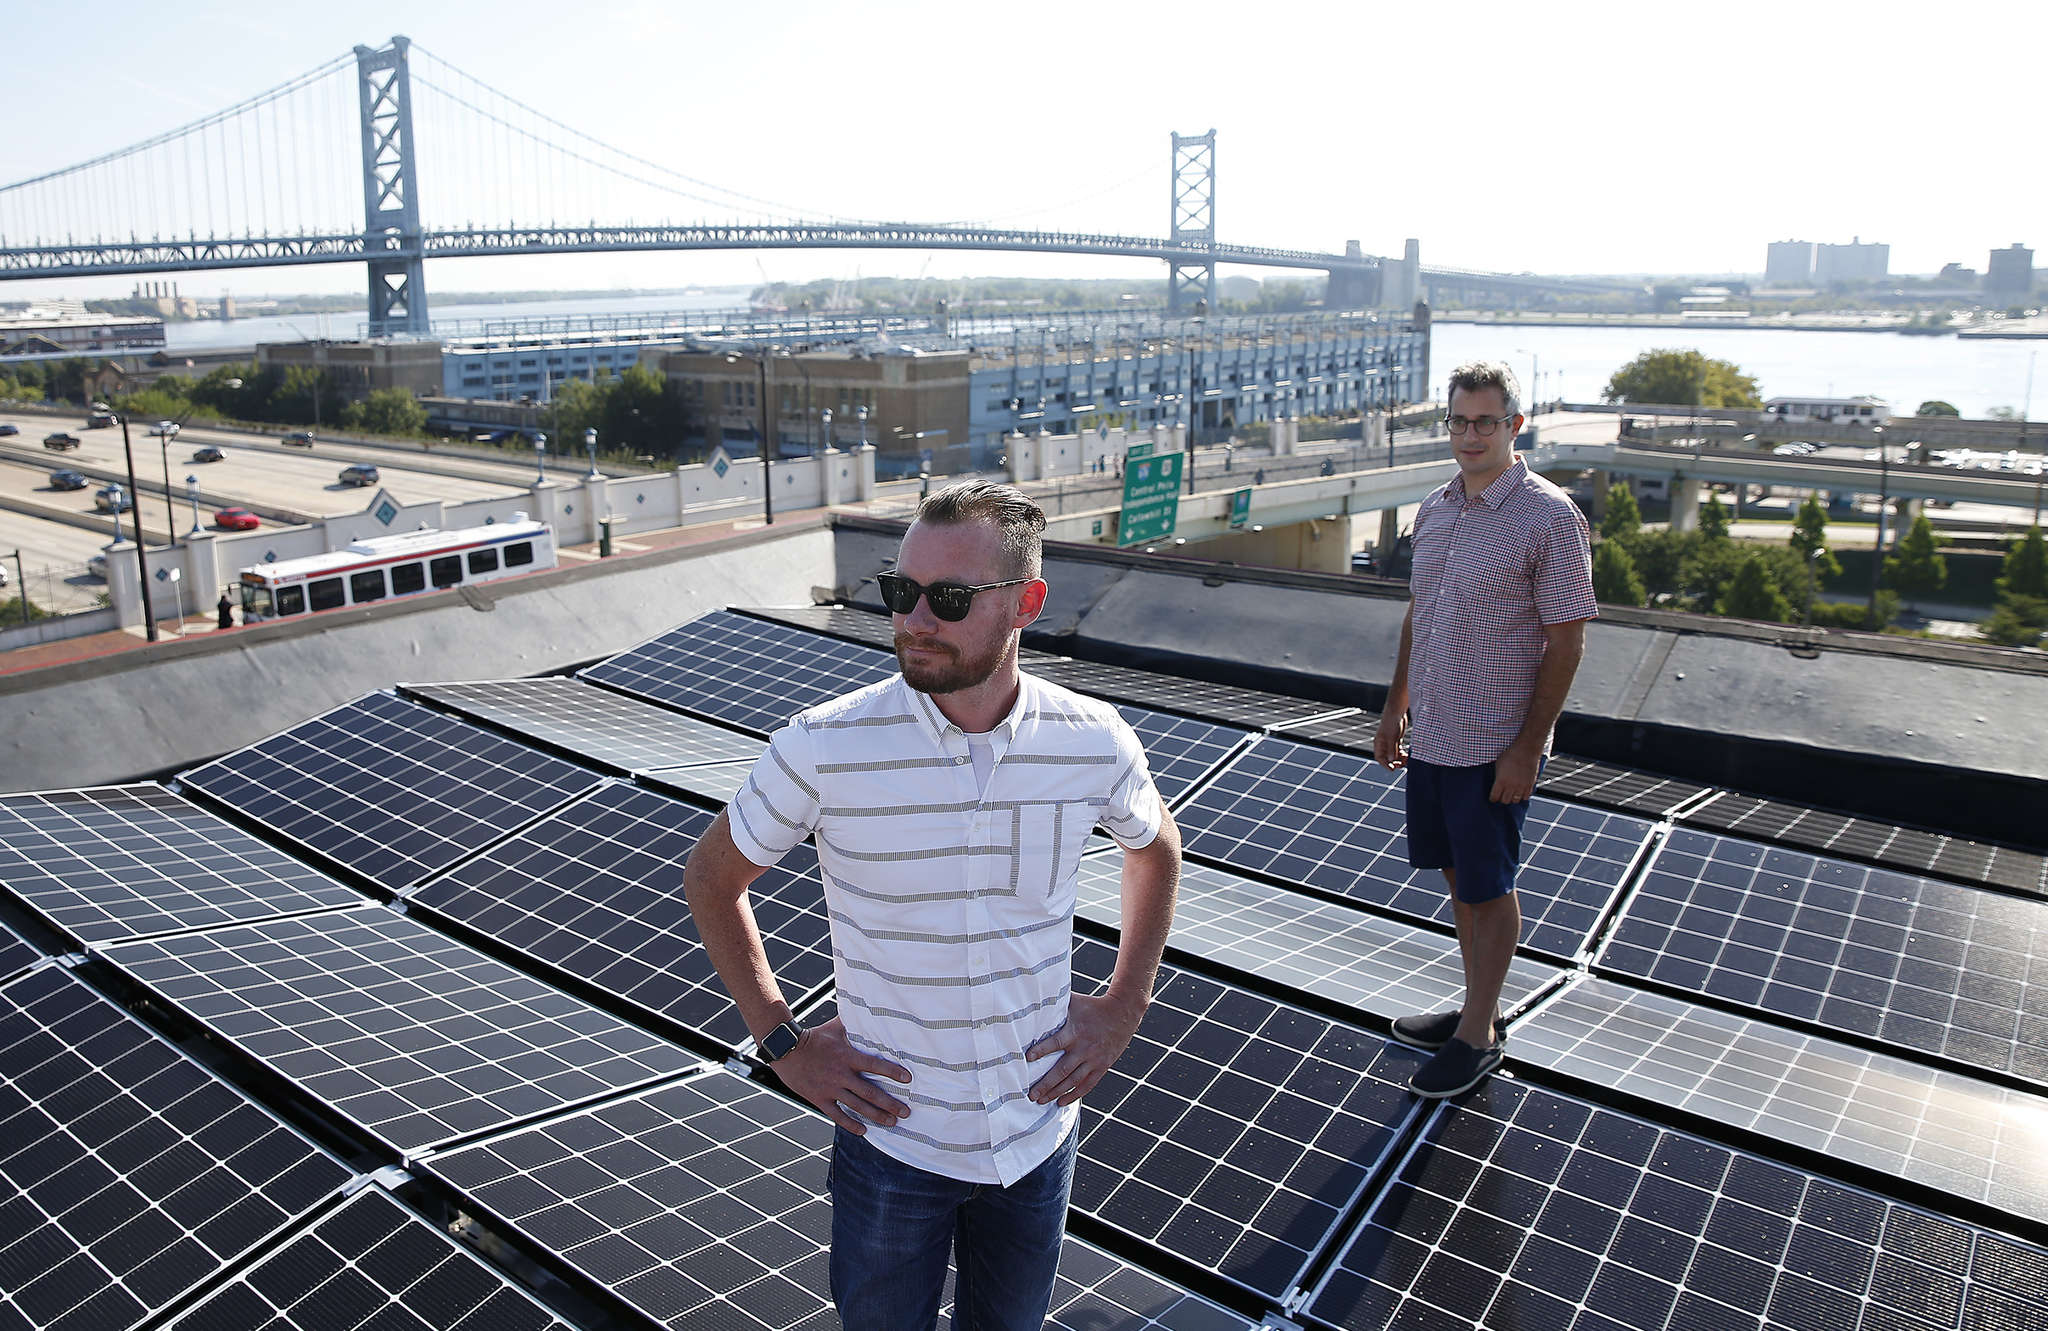 WebLinc cofounder and CEO Darren Hill (left) poses on his 38-panel solar roof with Micah Gold-Markel, founder of Solar States in Philadelphia.